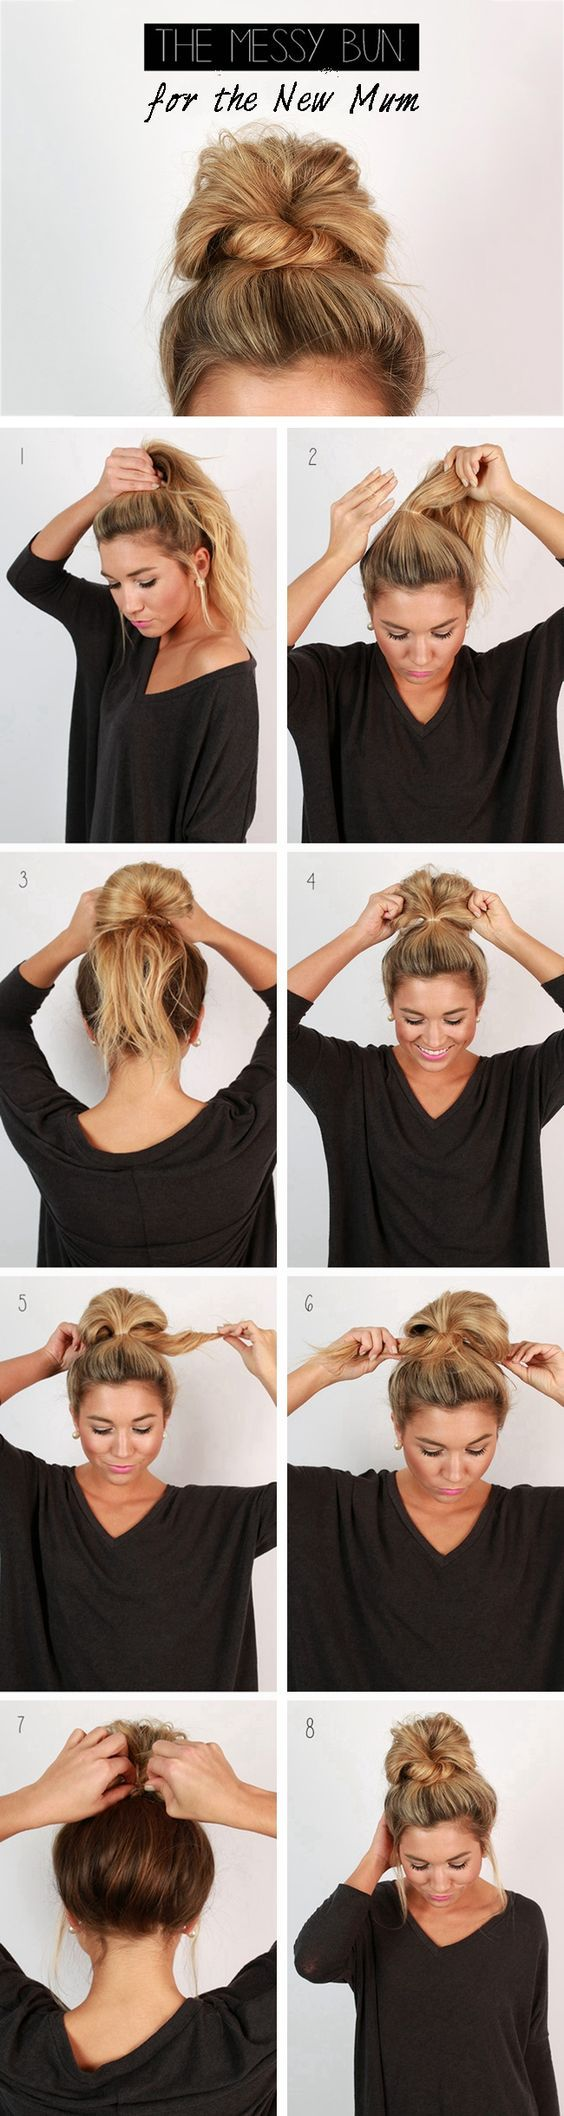 best images about hairstyles on pinterest half up updo and